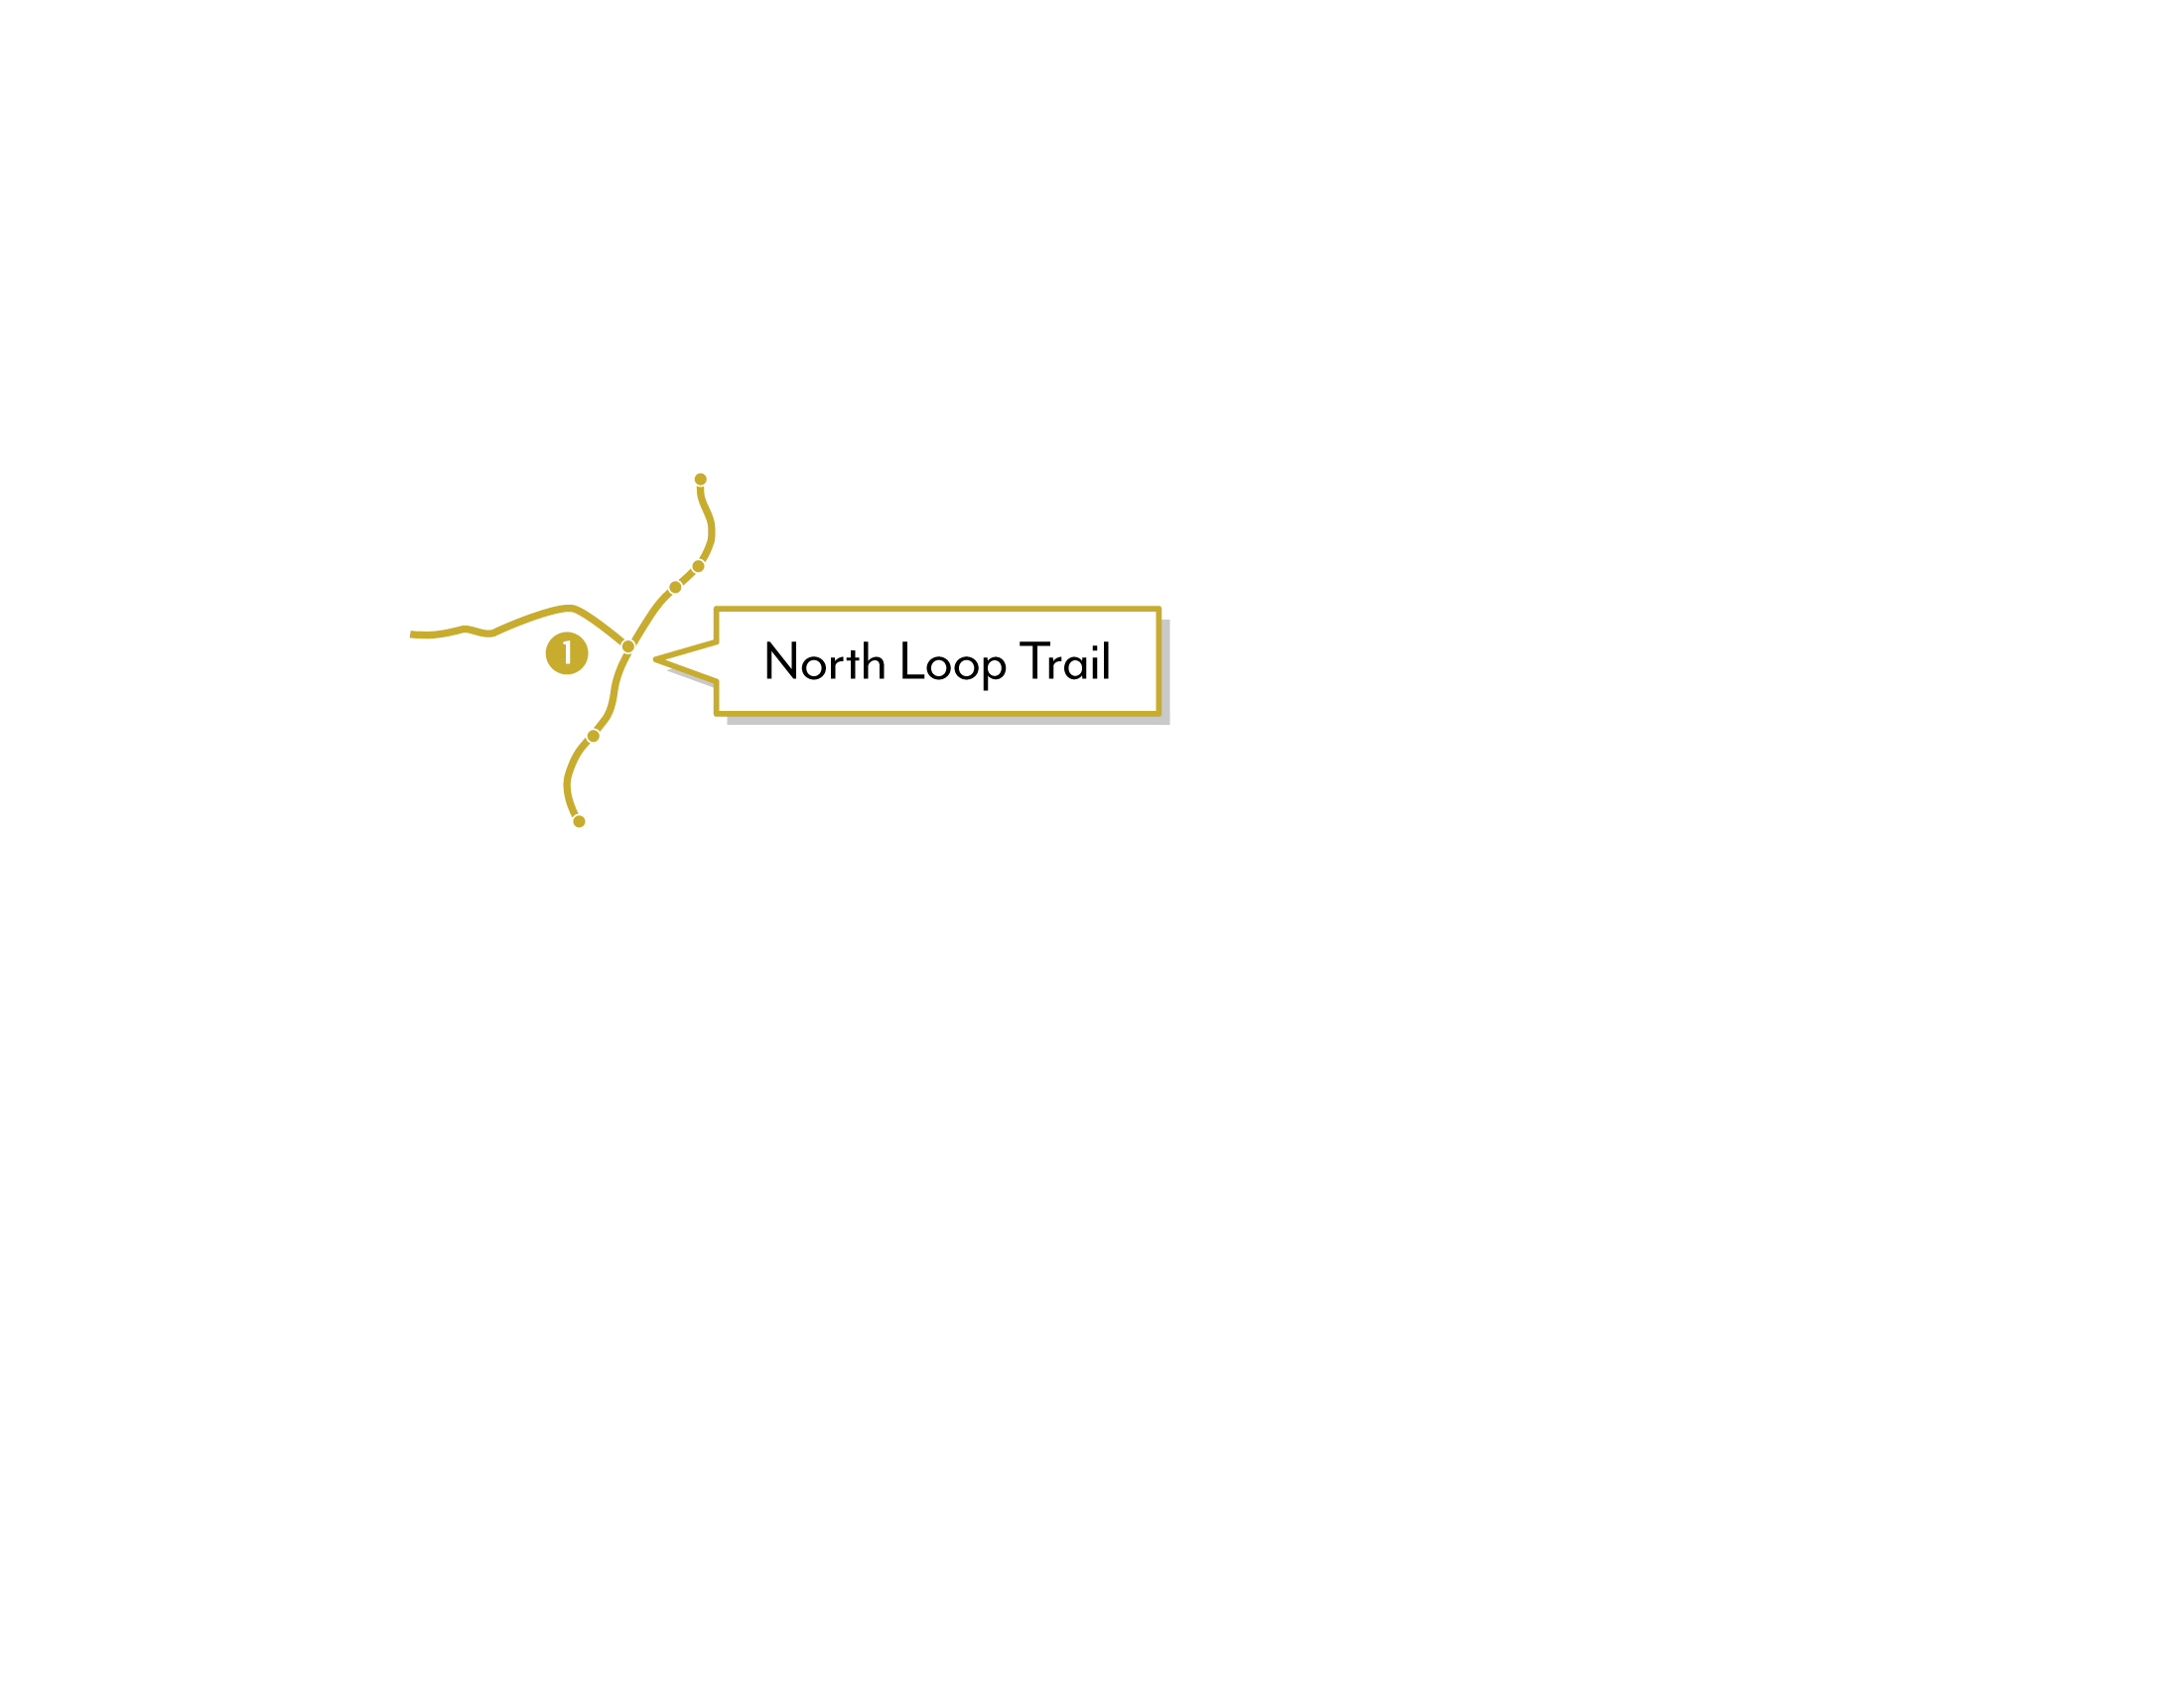 Shearwater graphic depicting North Loop Trail